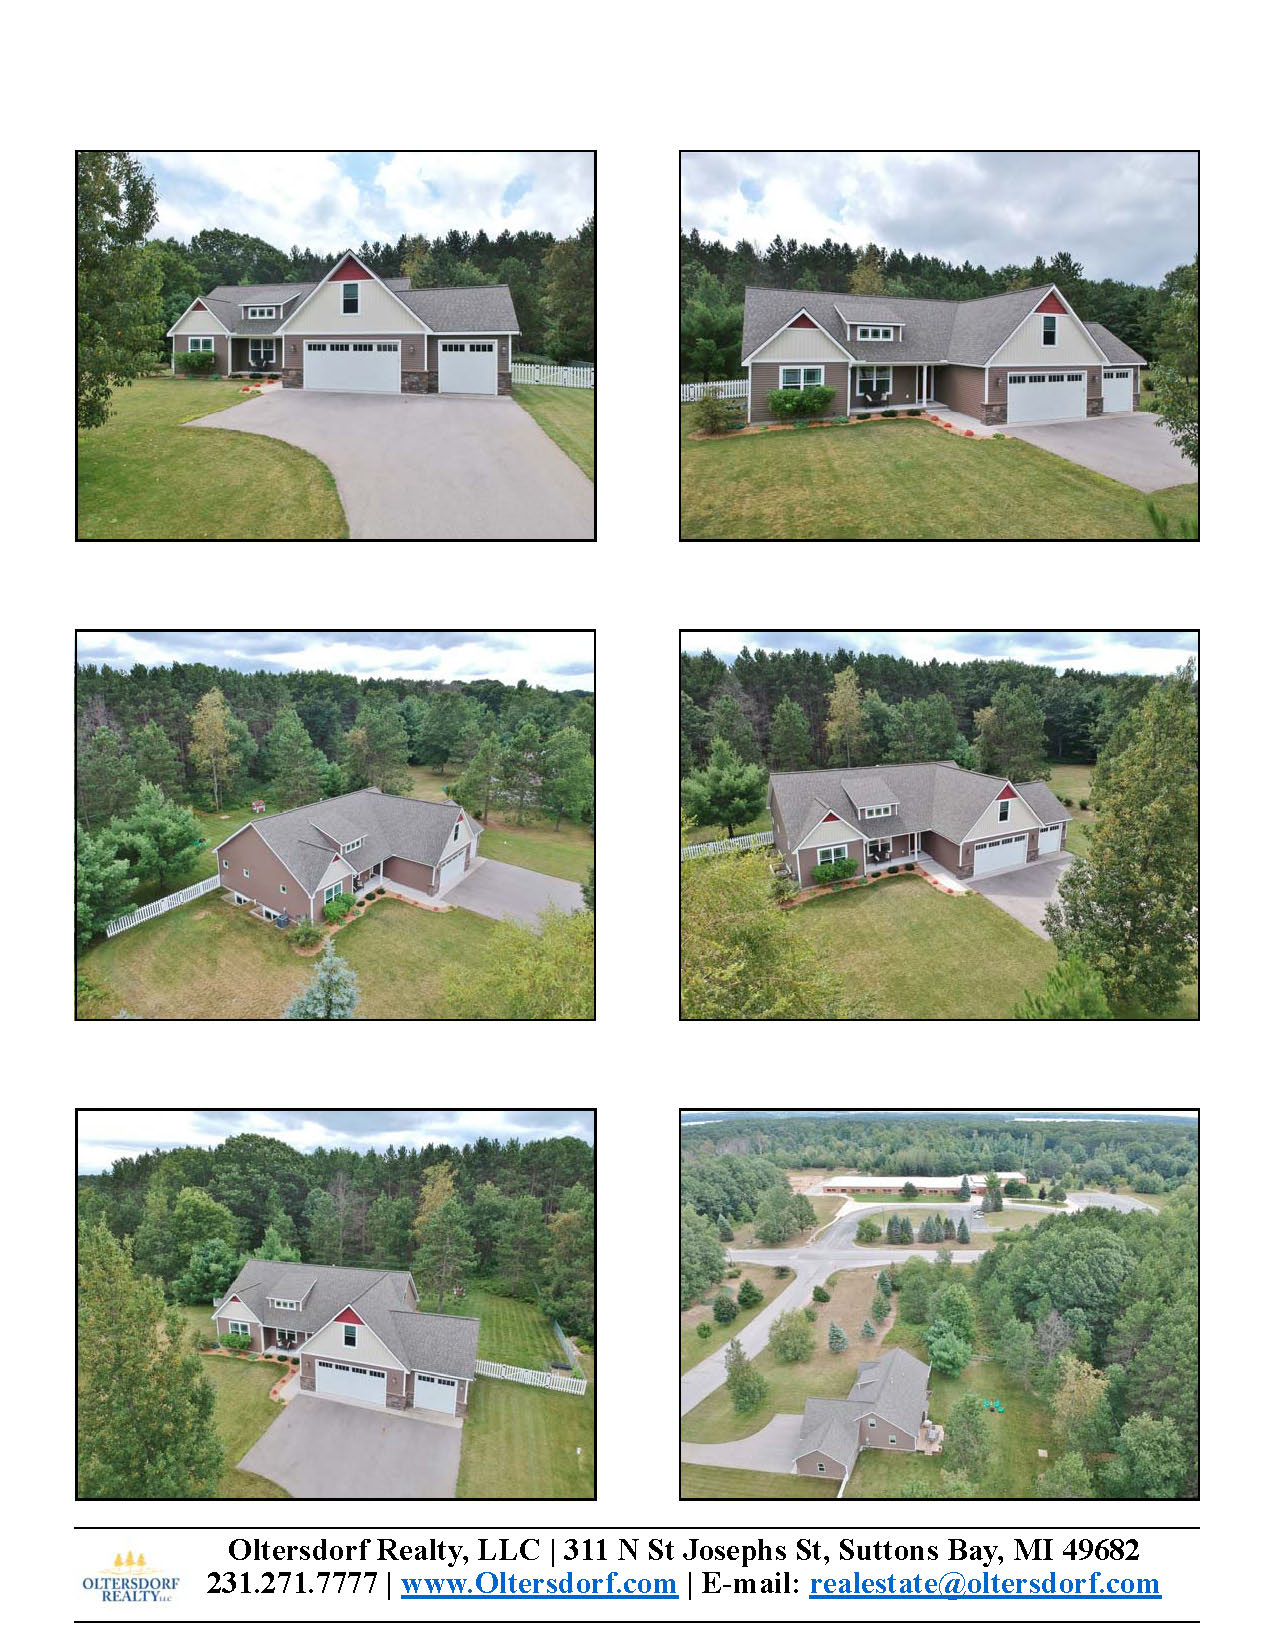 10049 Fishers Run, Traverse City, MI – Newer 2,175 Sq Ft Home on 1.32 Acres - Marketing Packet (2).jpg